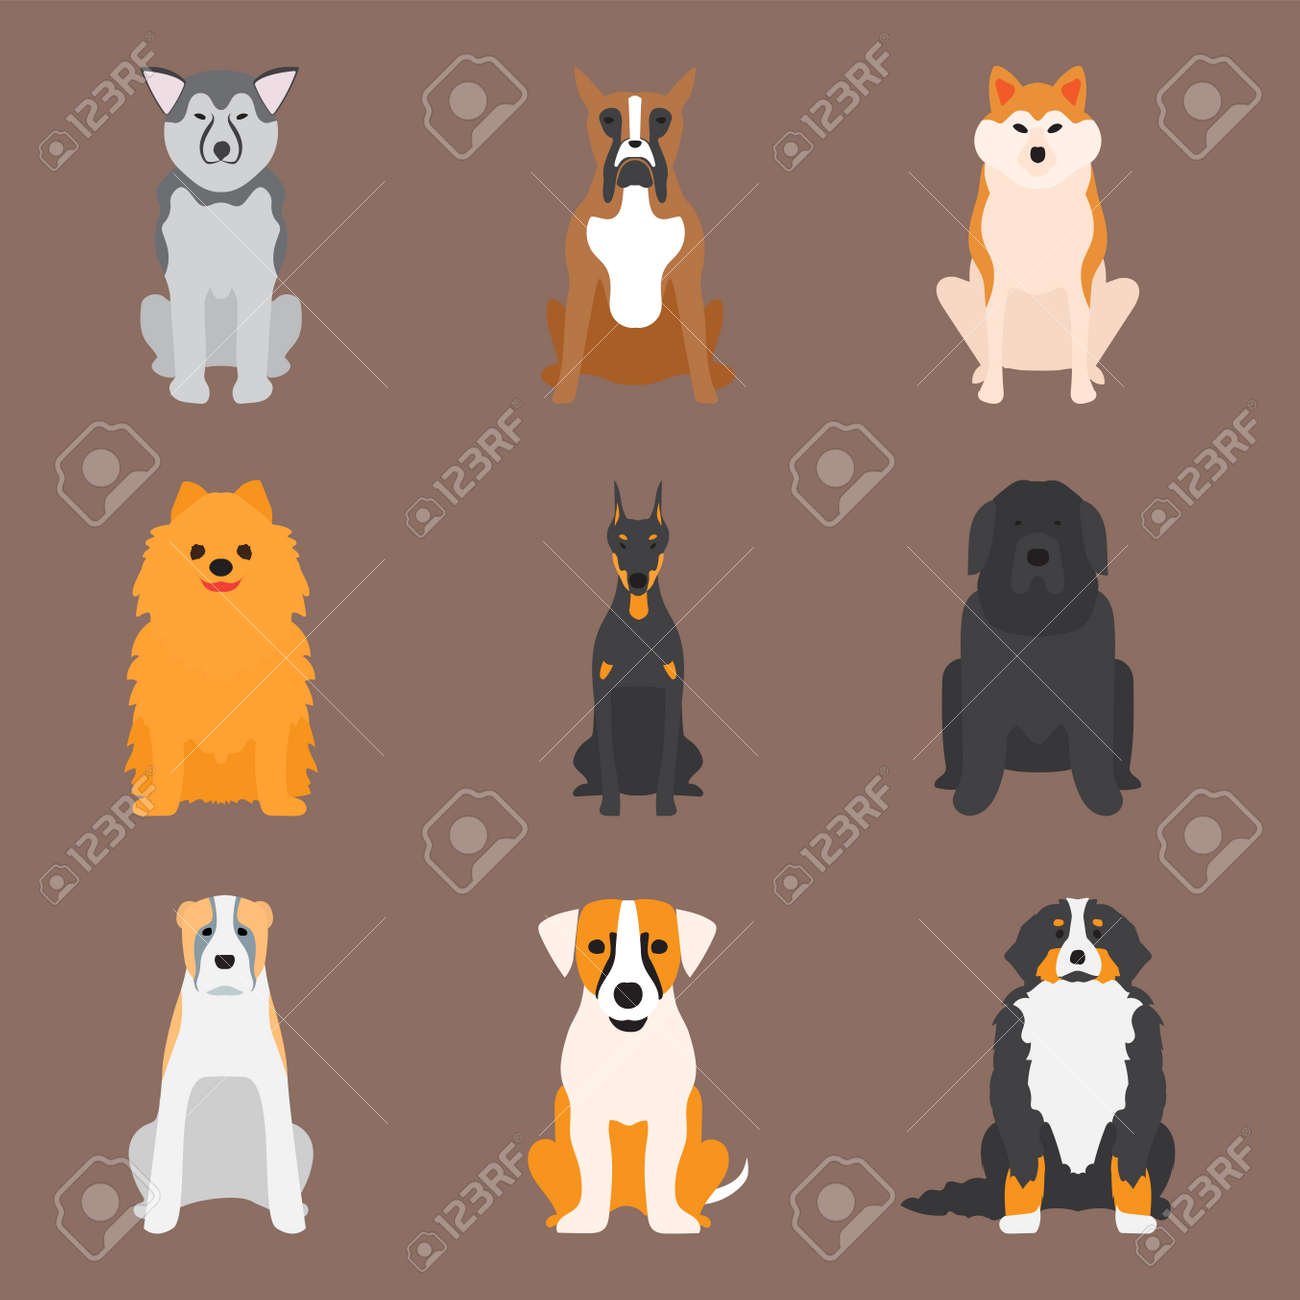 Top Funny Canine Adorable Dog - 77744672-funny-cartoon-dog-character-bread-cartoon-puppy-friendly-adorable-canine-vector-illustration-  2018_60904  .jpg